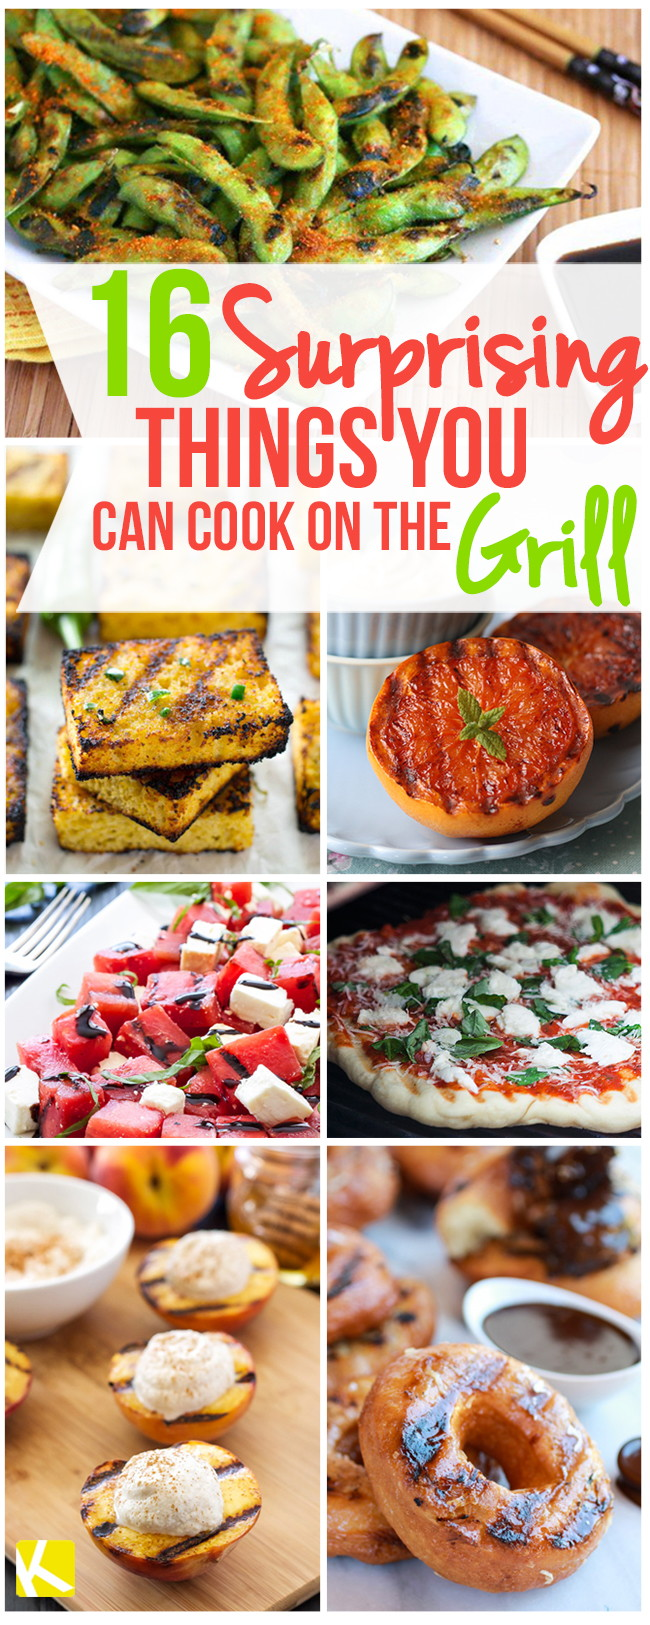 16 Surprising Things You Can Cook on the Grill - The Krazy ...